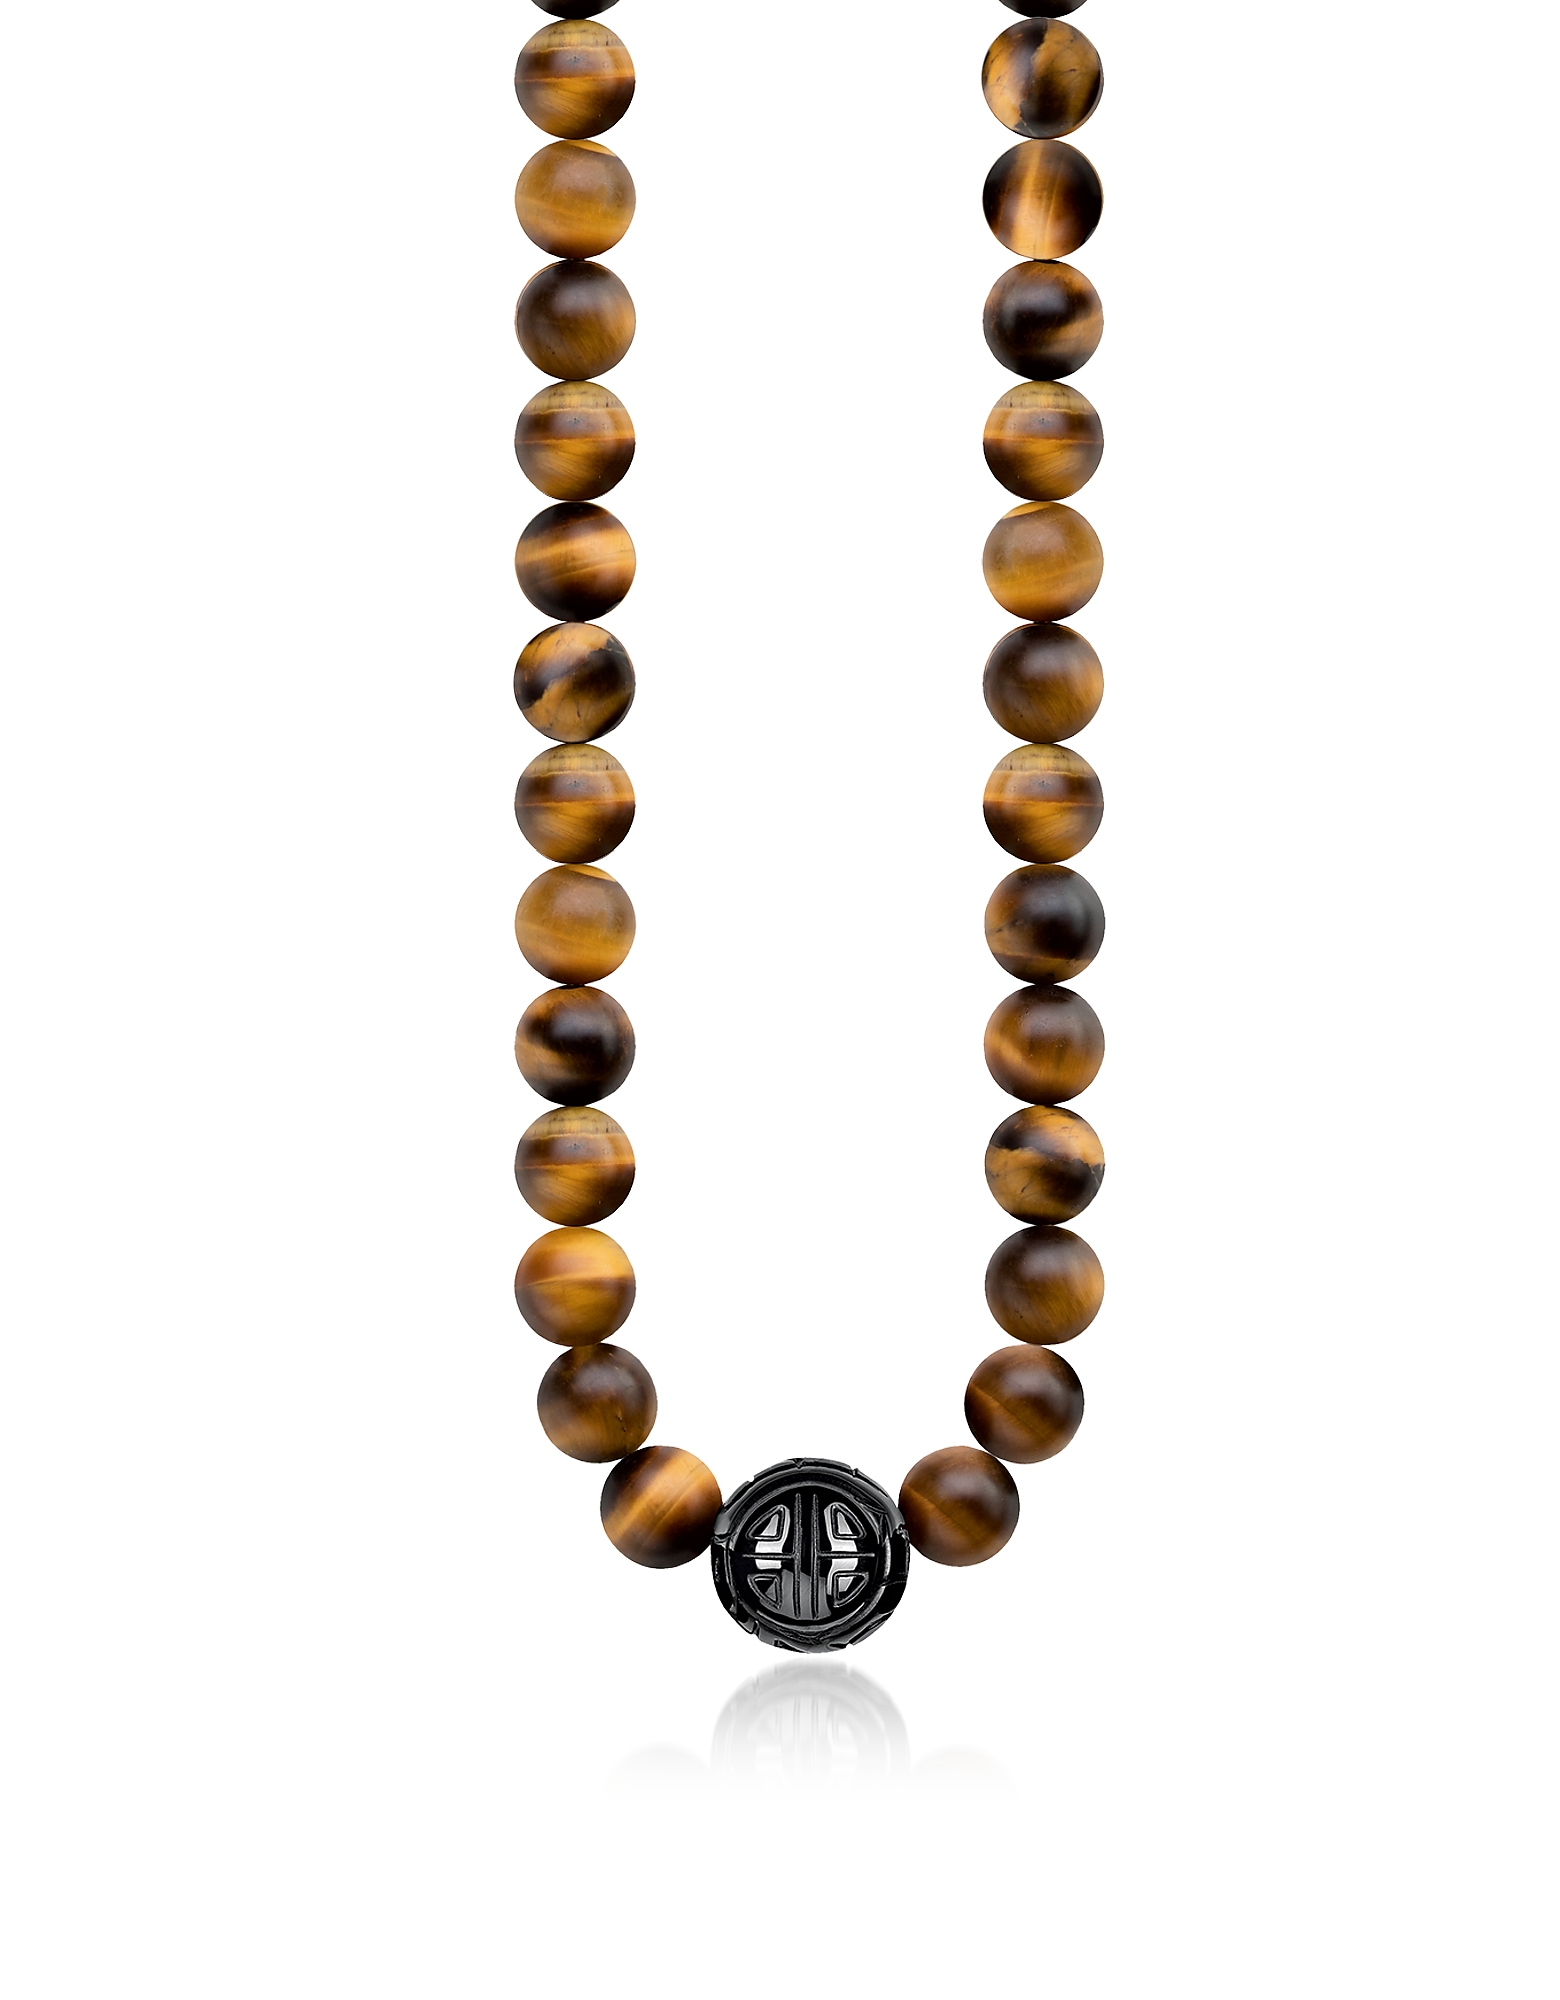 Thomas Sabo Designer Necklaces, Power Necklace Yellow Tiger Eye Beads and Sterling Silver Men's Necklace